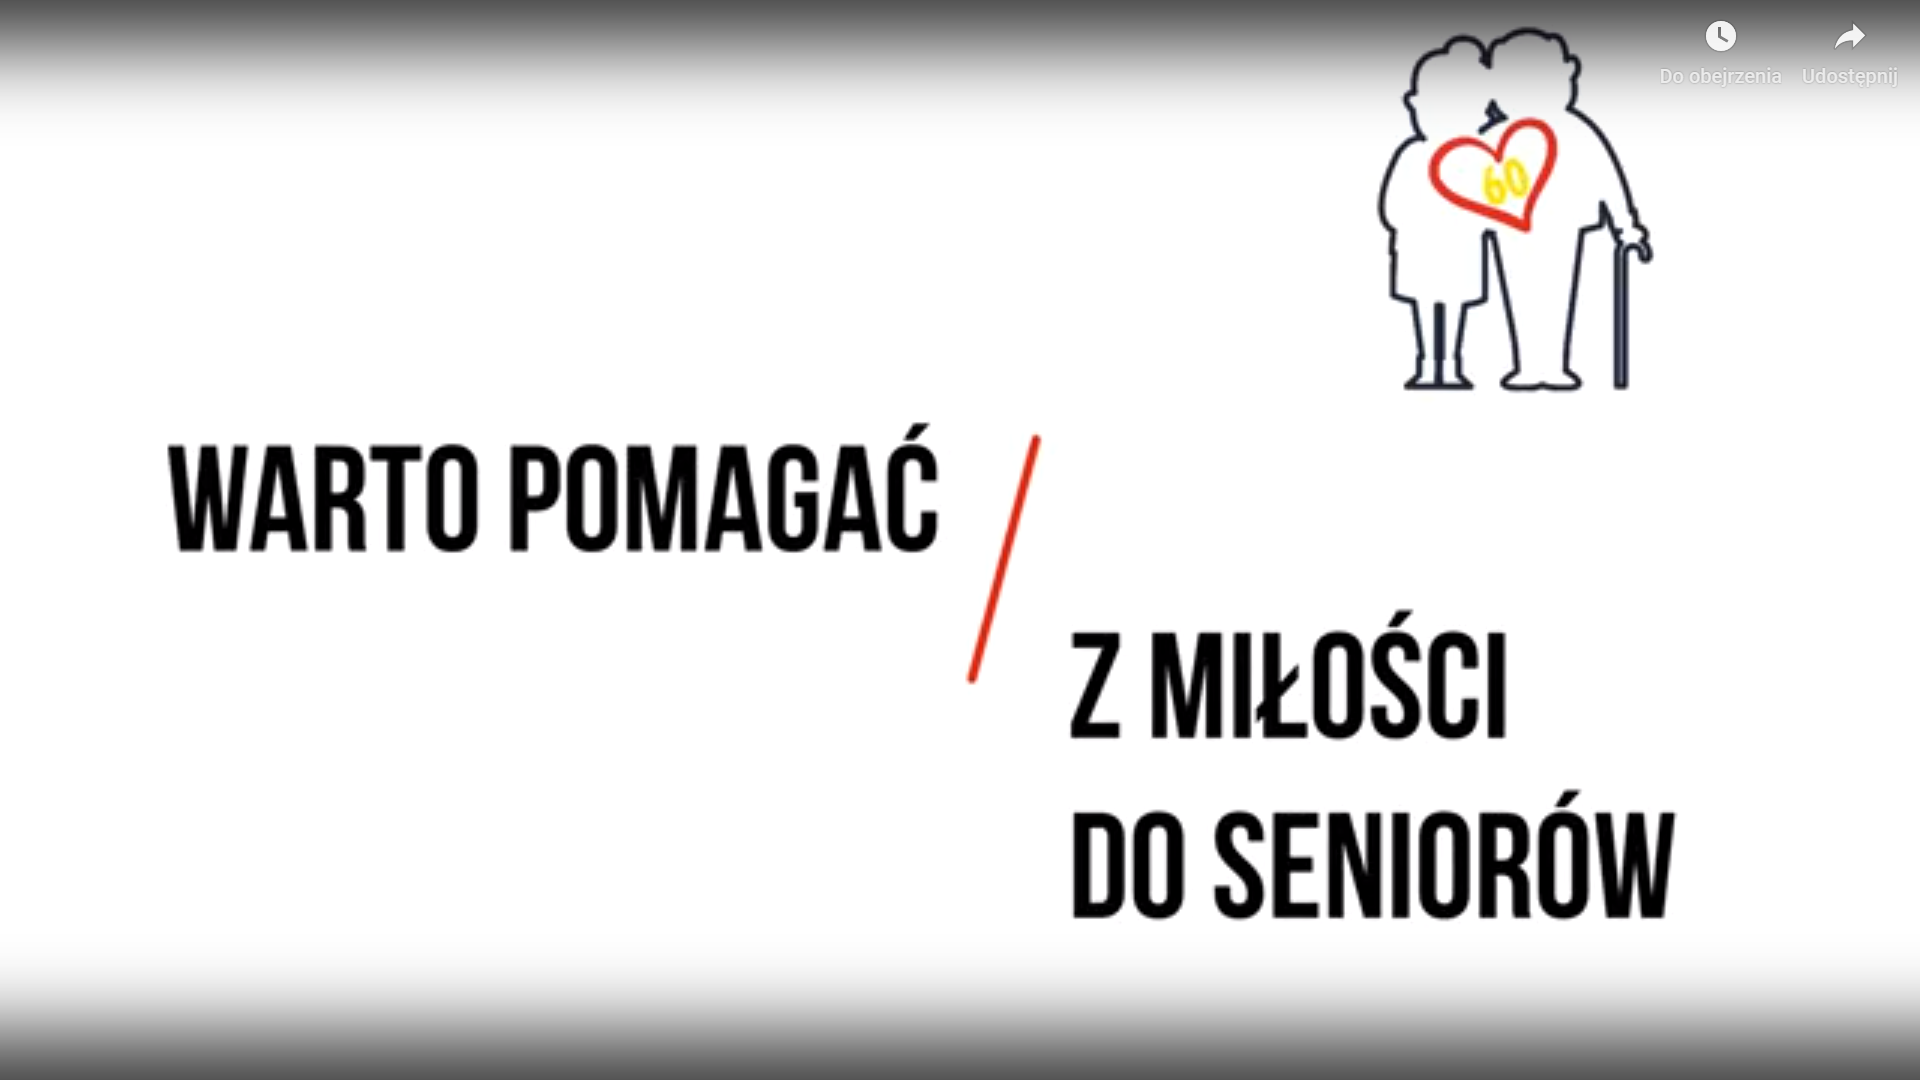 zmiloscidoseniorow